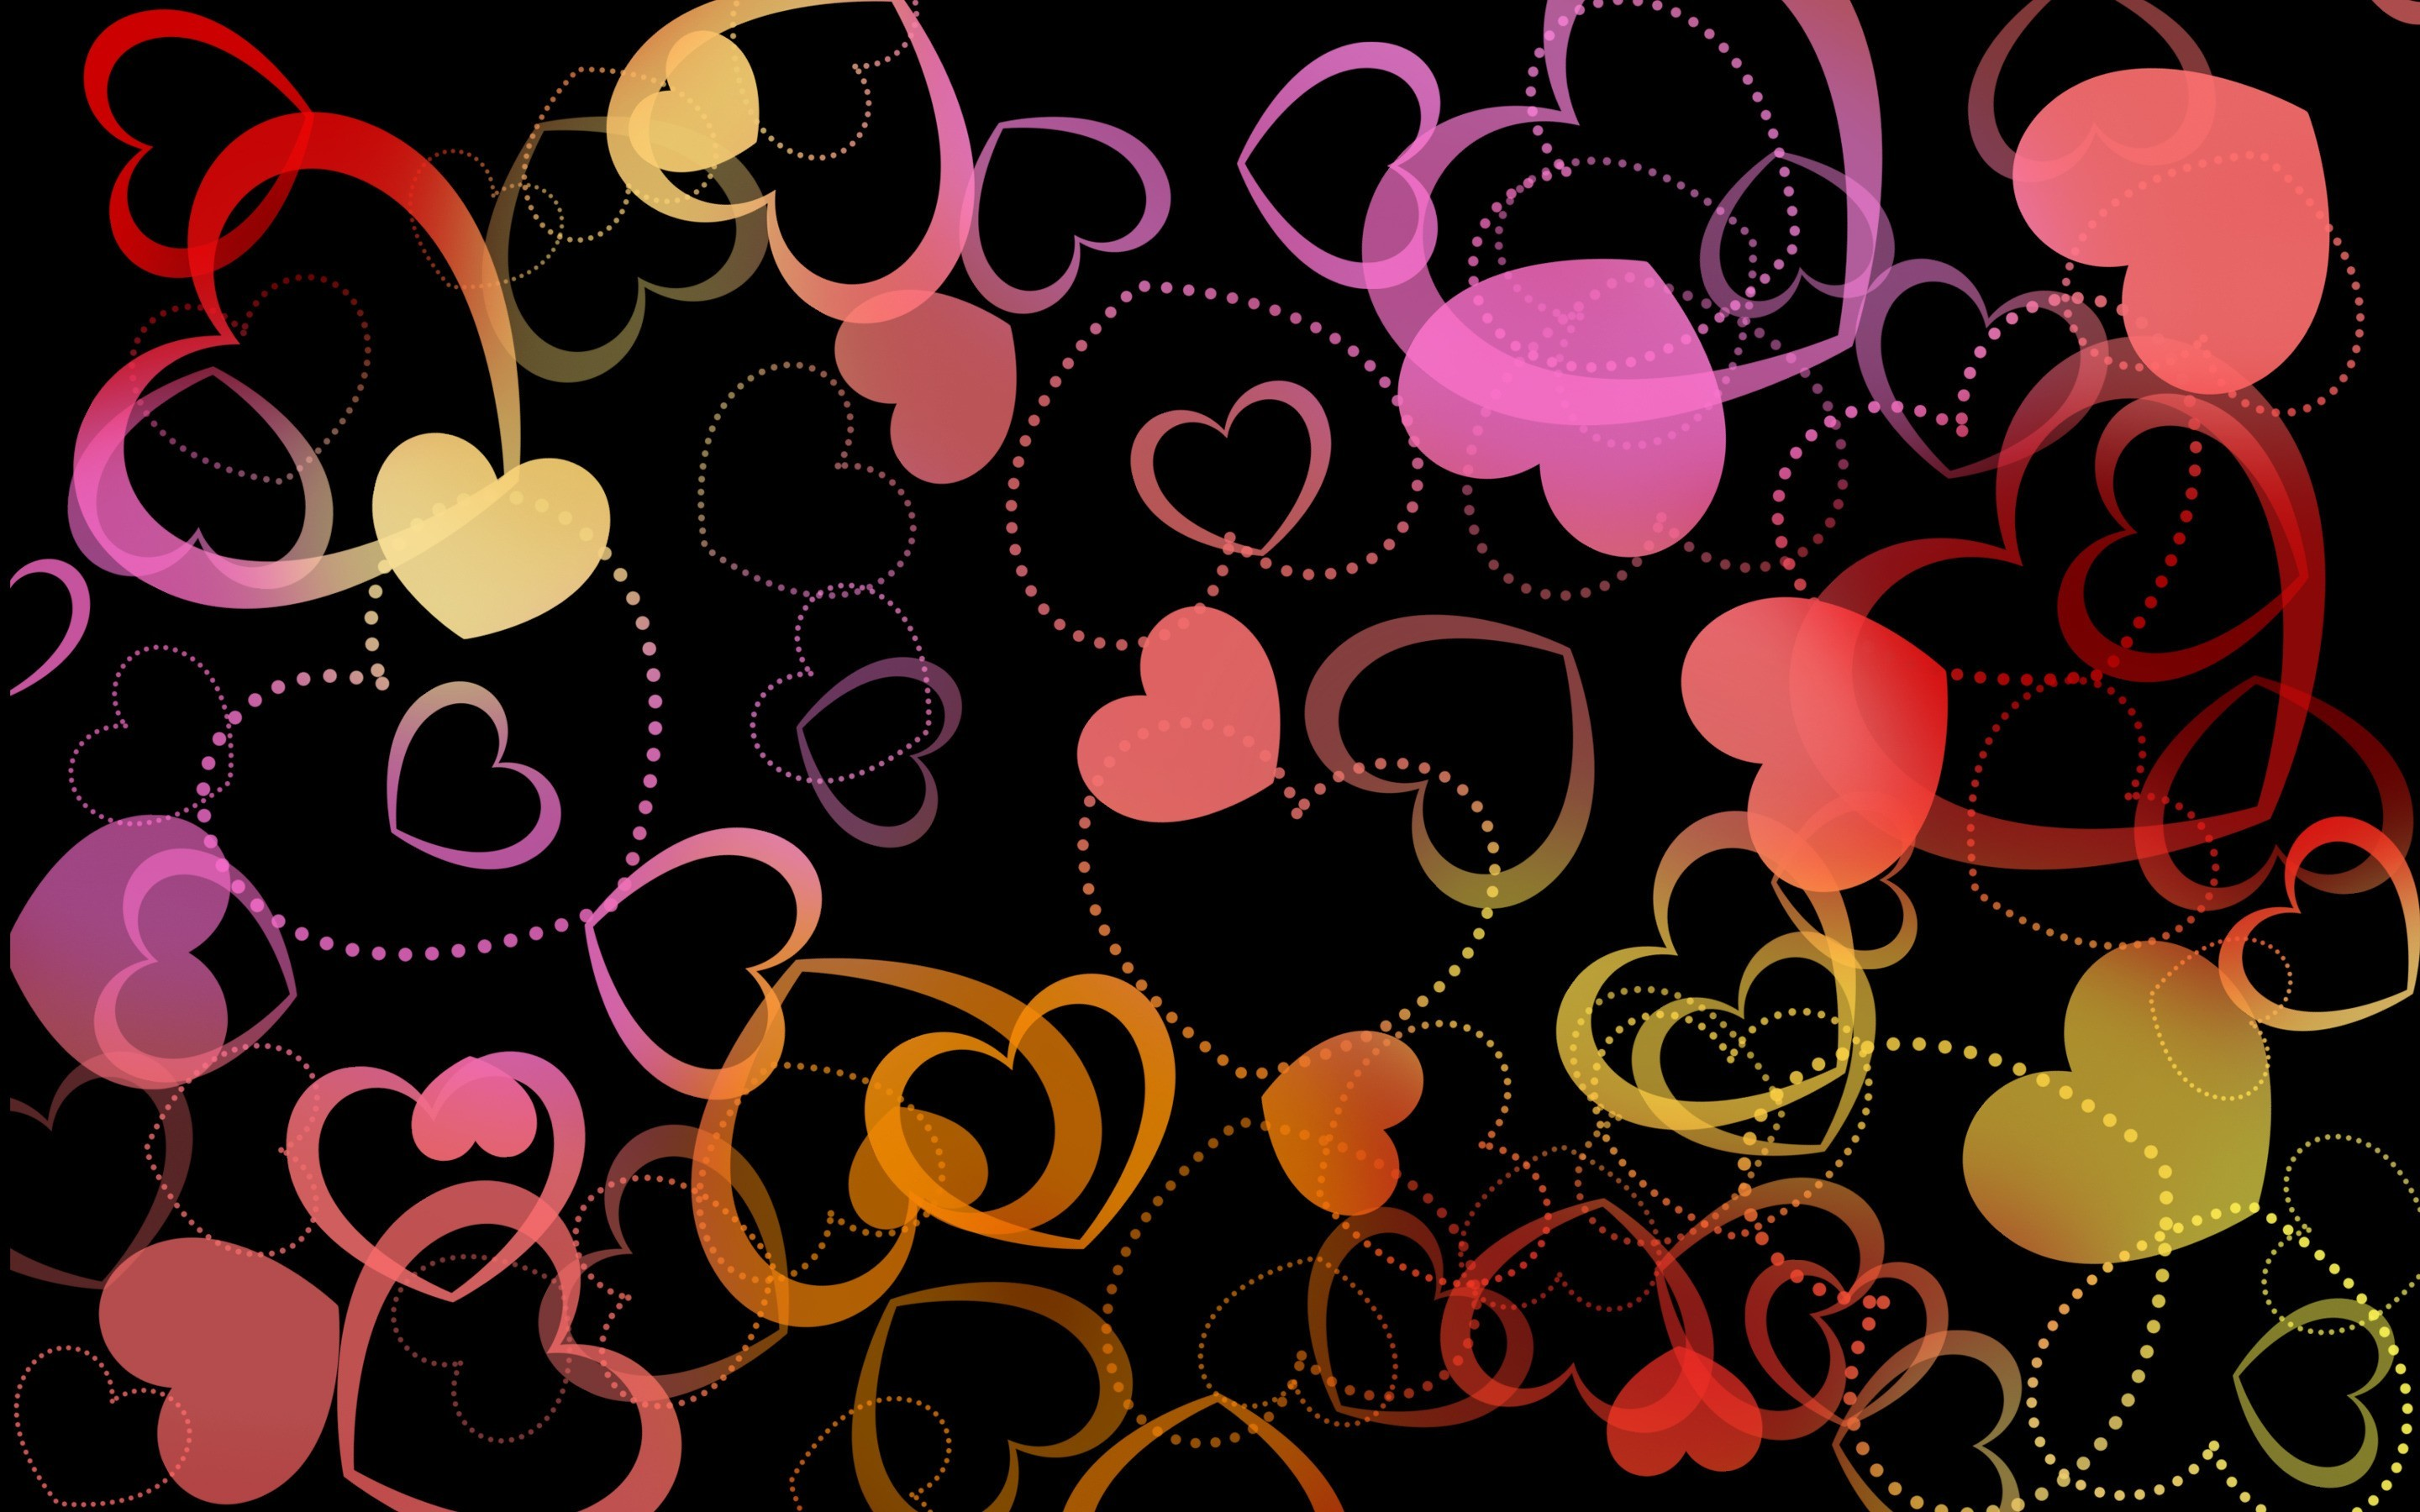 2880x1800 Hearts Wallpaper 12  768x480